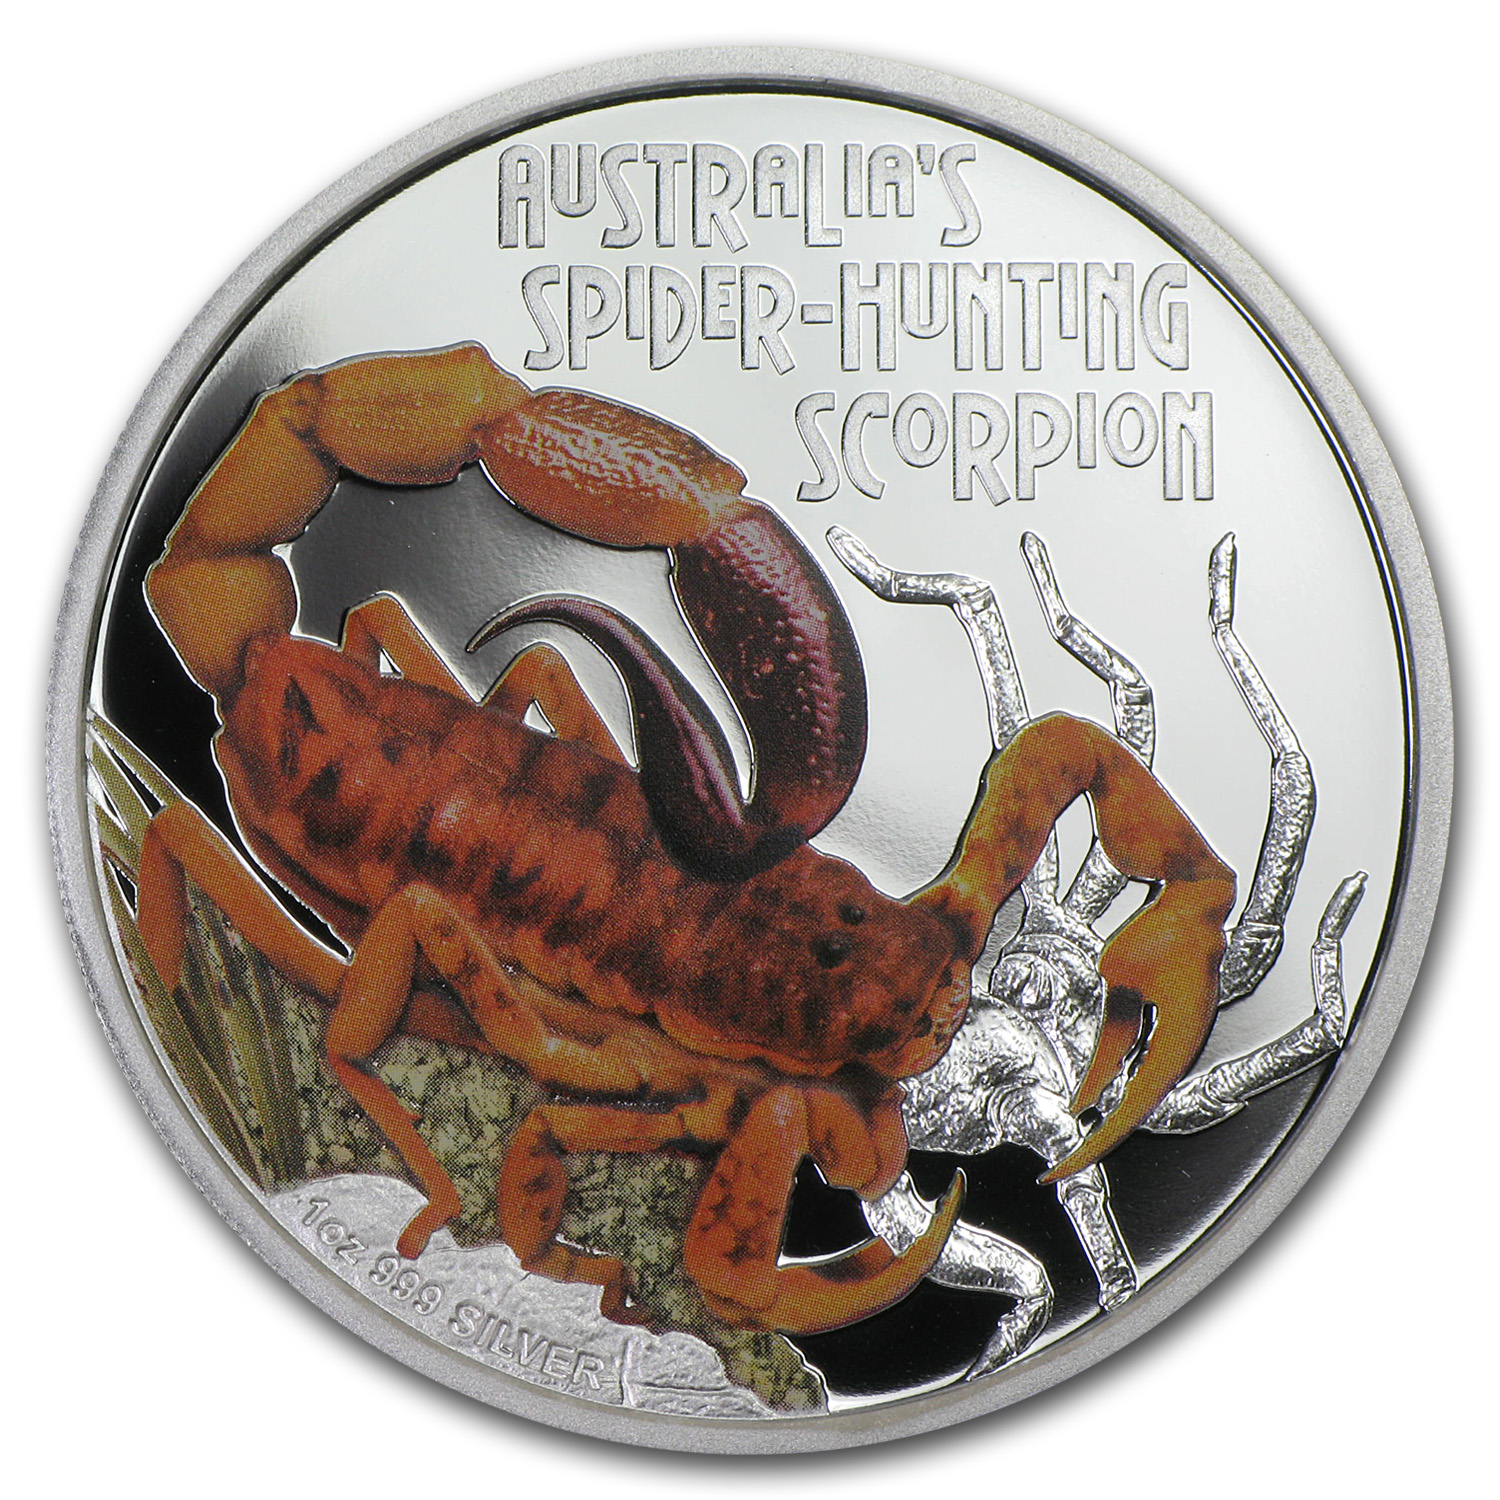 2014 Australia 1 oz Silver Spider Hunting Scorpion Proof